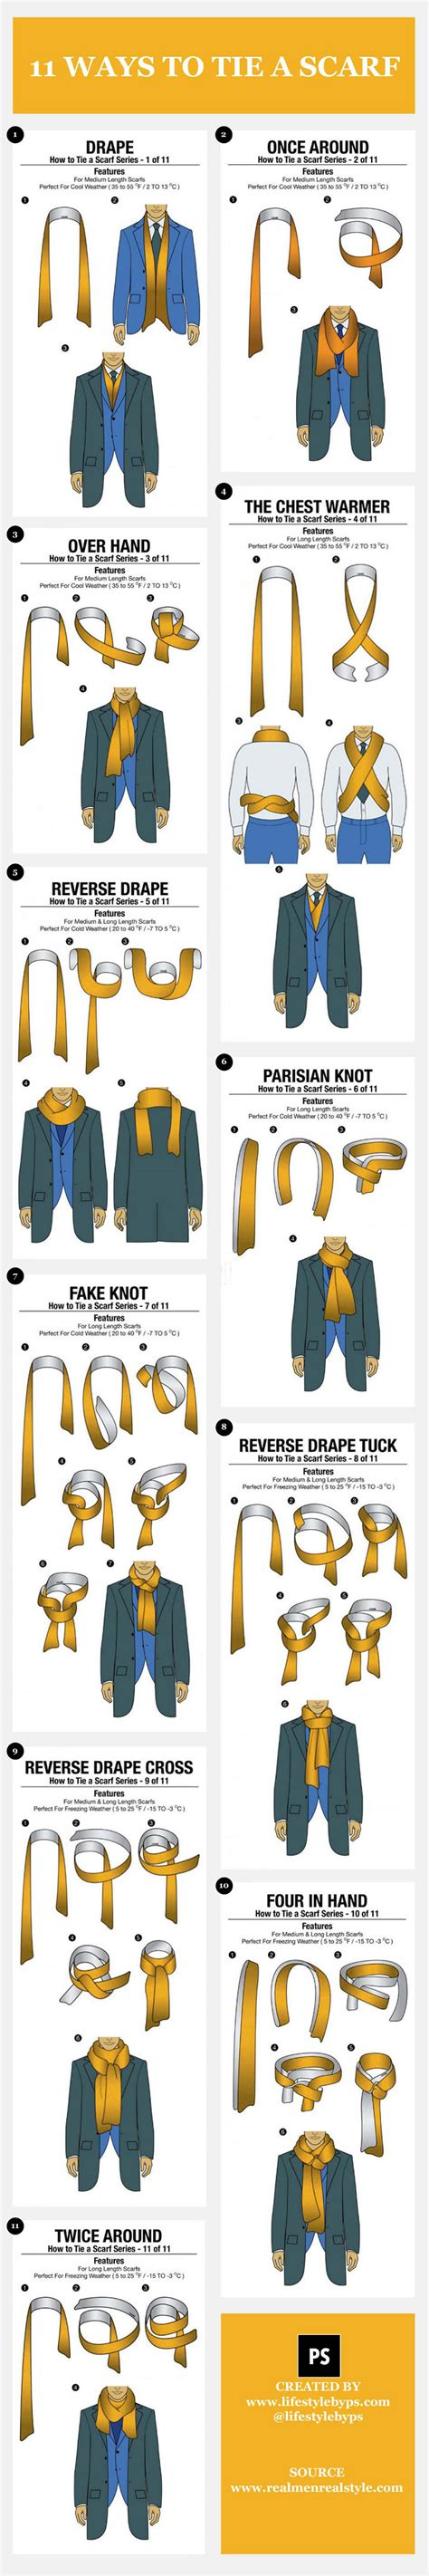 11 Different Ways To Tie A Scarf Brandongaillecom